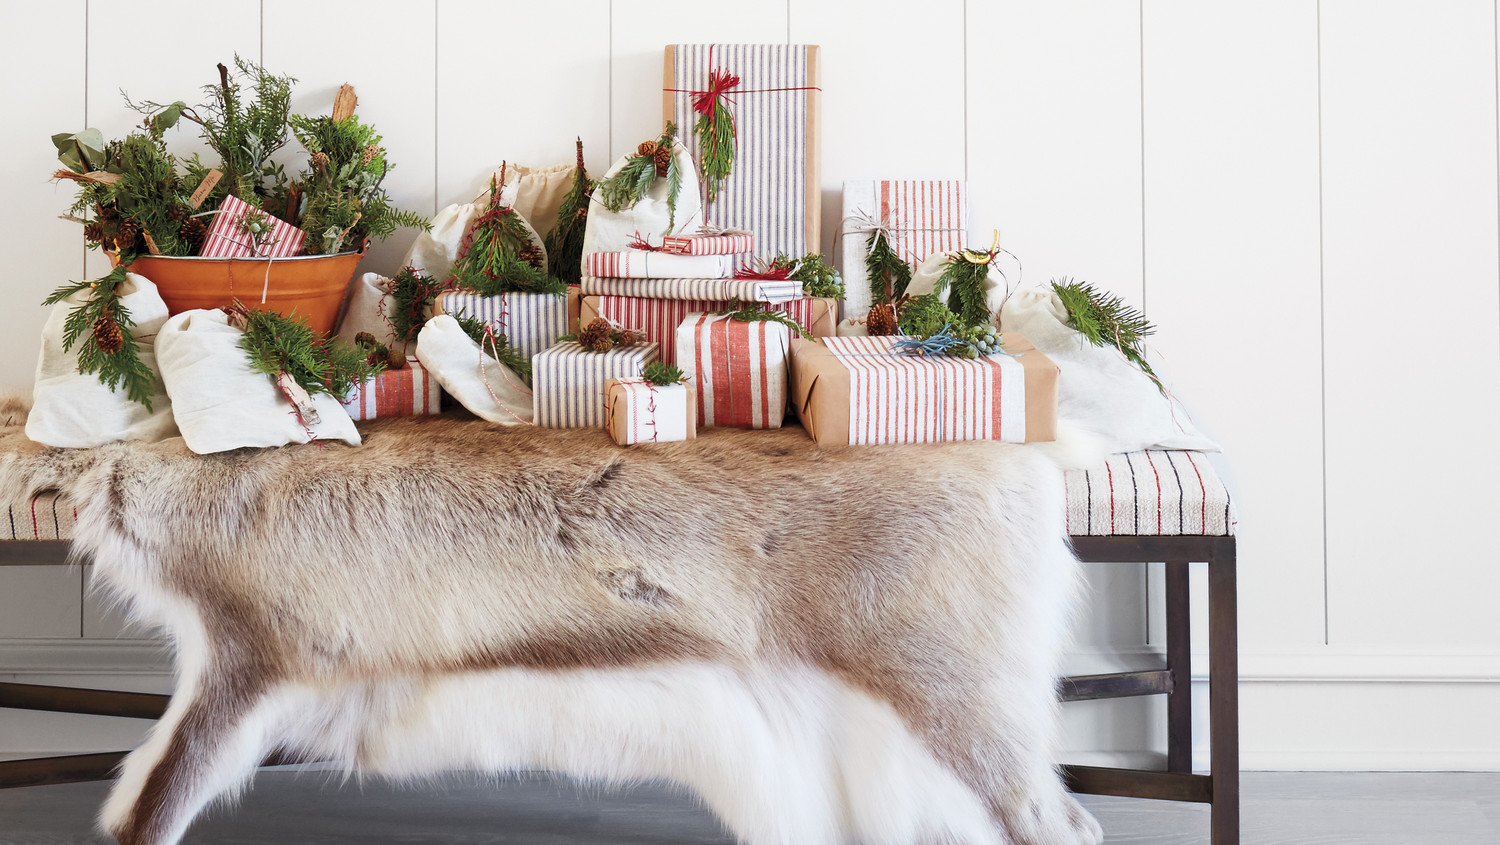 12 Holiday Gifts the Entire Family Will Love